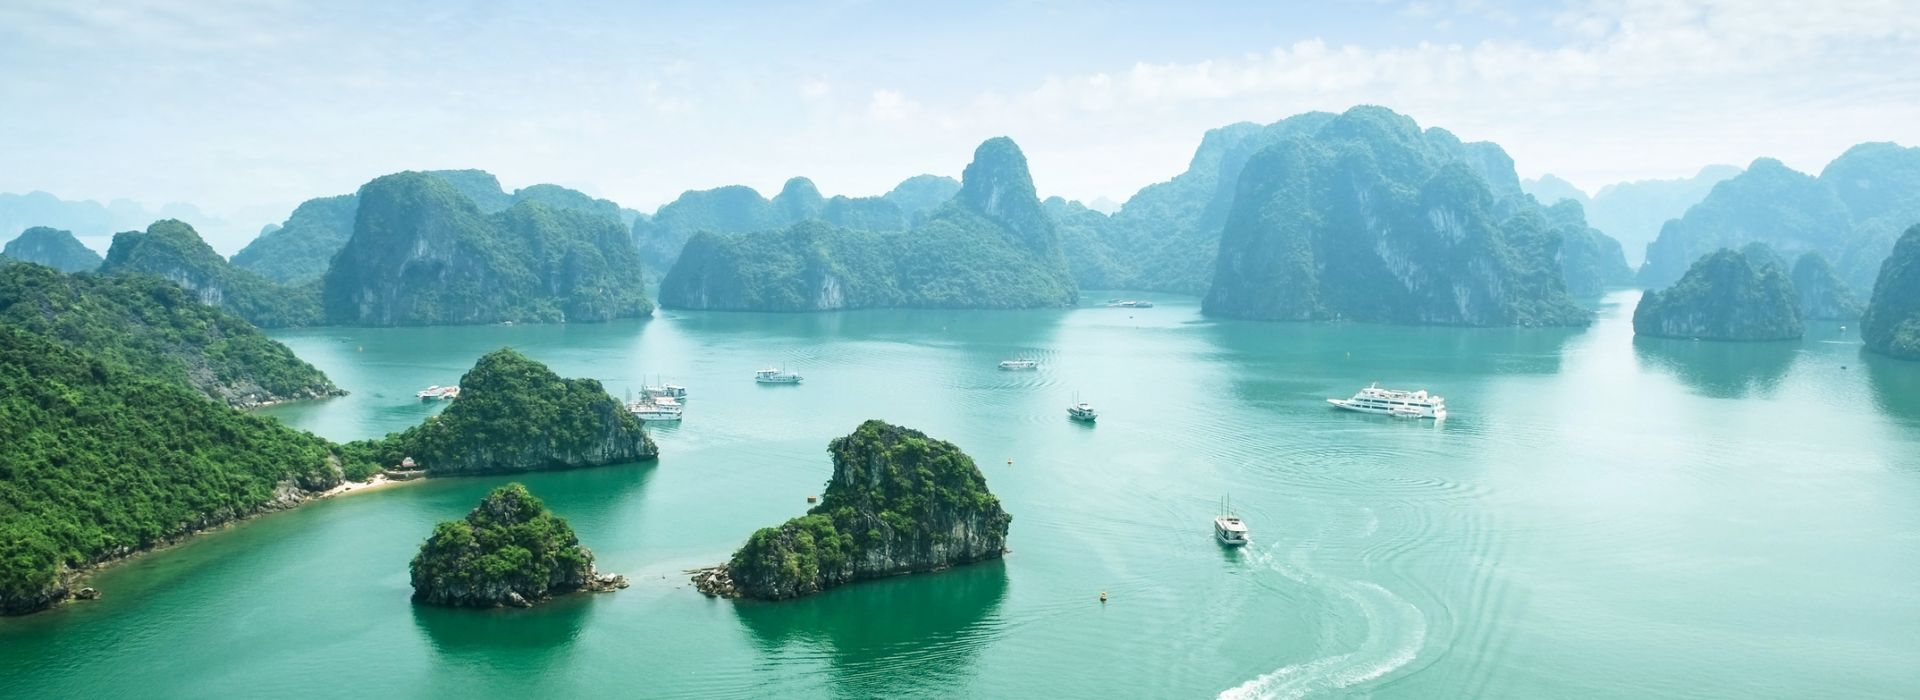 Natural landmarks sightseeing Tours in Ho Chi Minh City